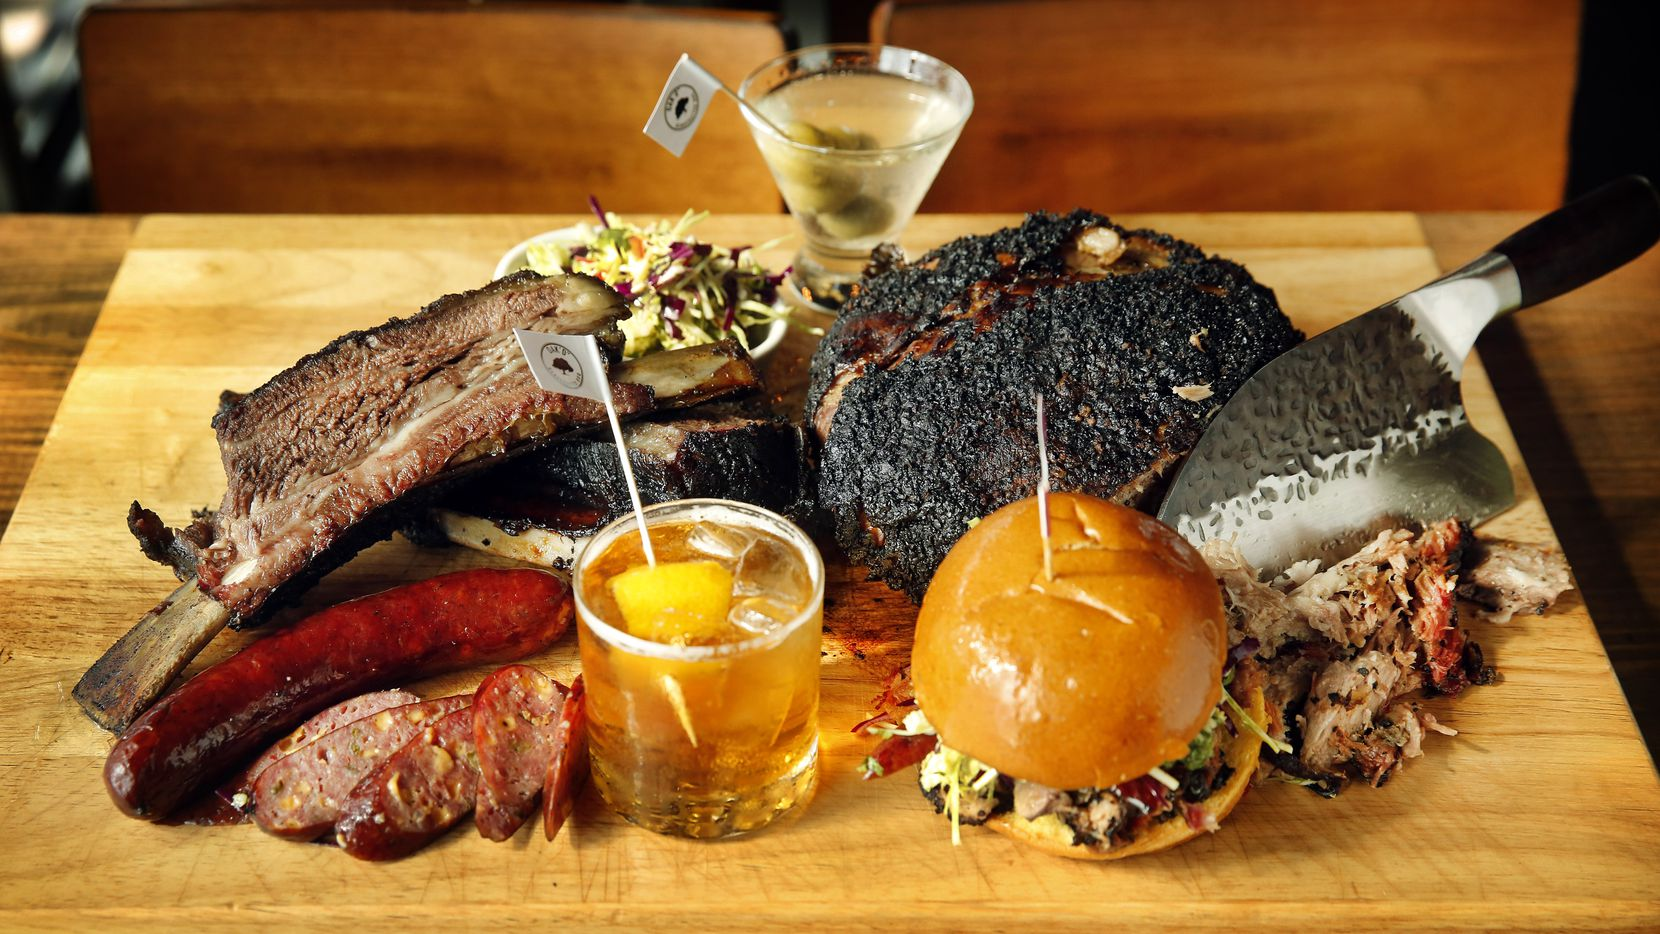 Oak'd opened Nov. 6, 2020. The menu includes beef ribs, jalapeño cheddar sausage, A Sandwich and Some Lovin' (named for celebrity radio host Kellie Rasberry's podcast), and chopped pork butt. Also pictured are two signature cocktails named for the radio host and her husband Allen Evans.